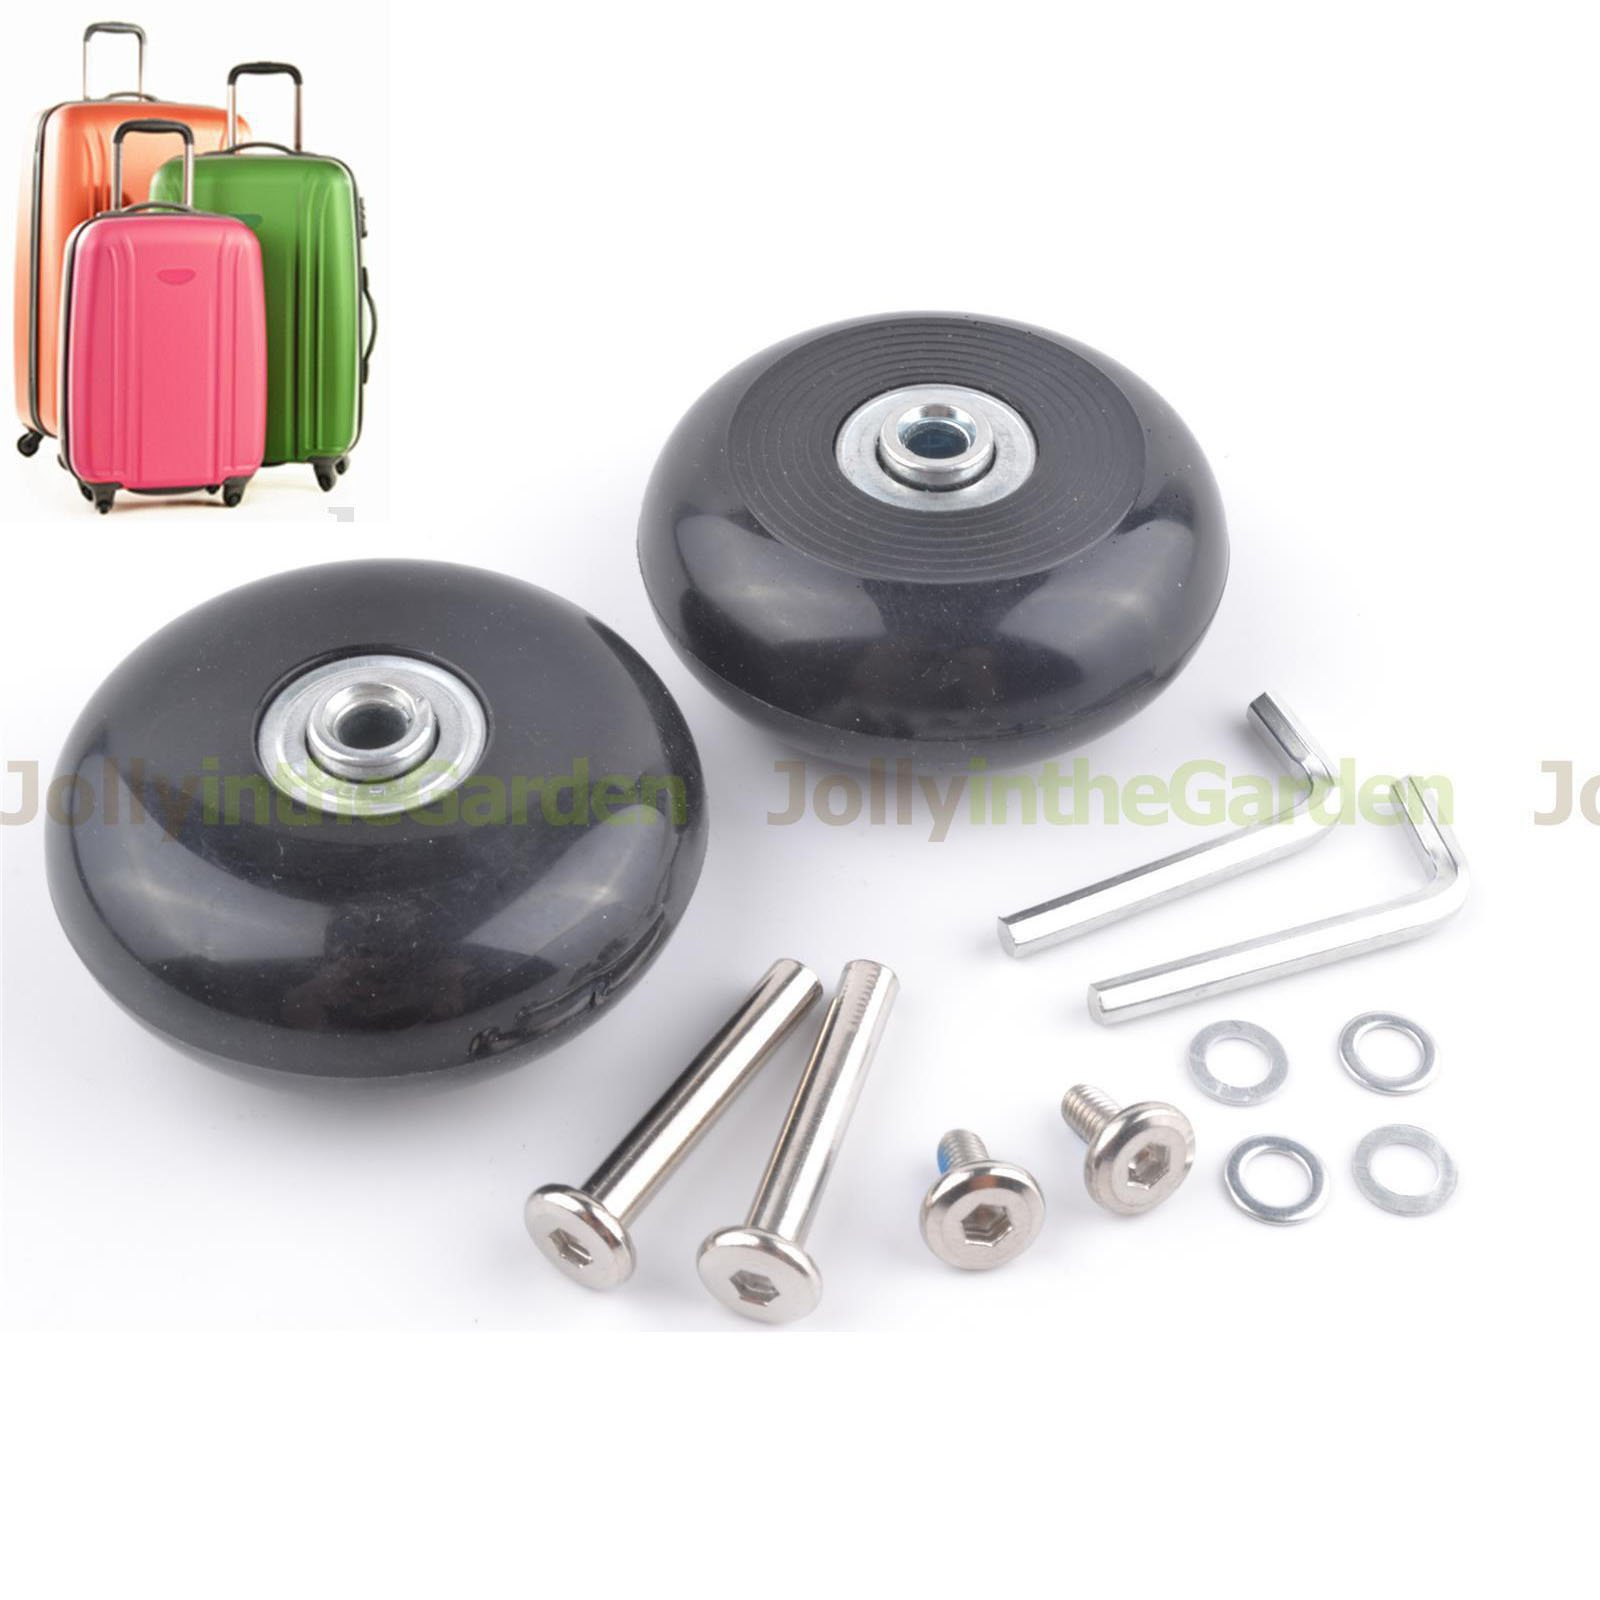 ABBOTT OD. 64 mm Wide 24 mm Axle 40 mm Luggage Suitcase/Inline Outdoor Skate Replacement Wheels with ABEC 608zz Bearings